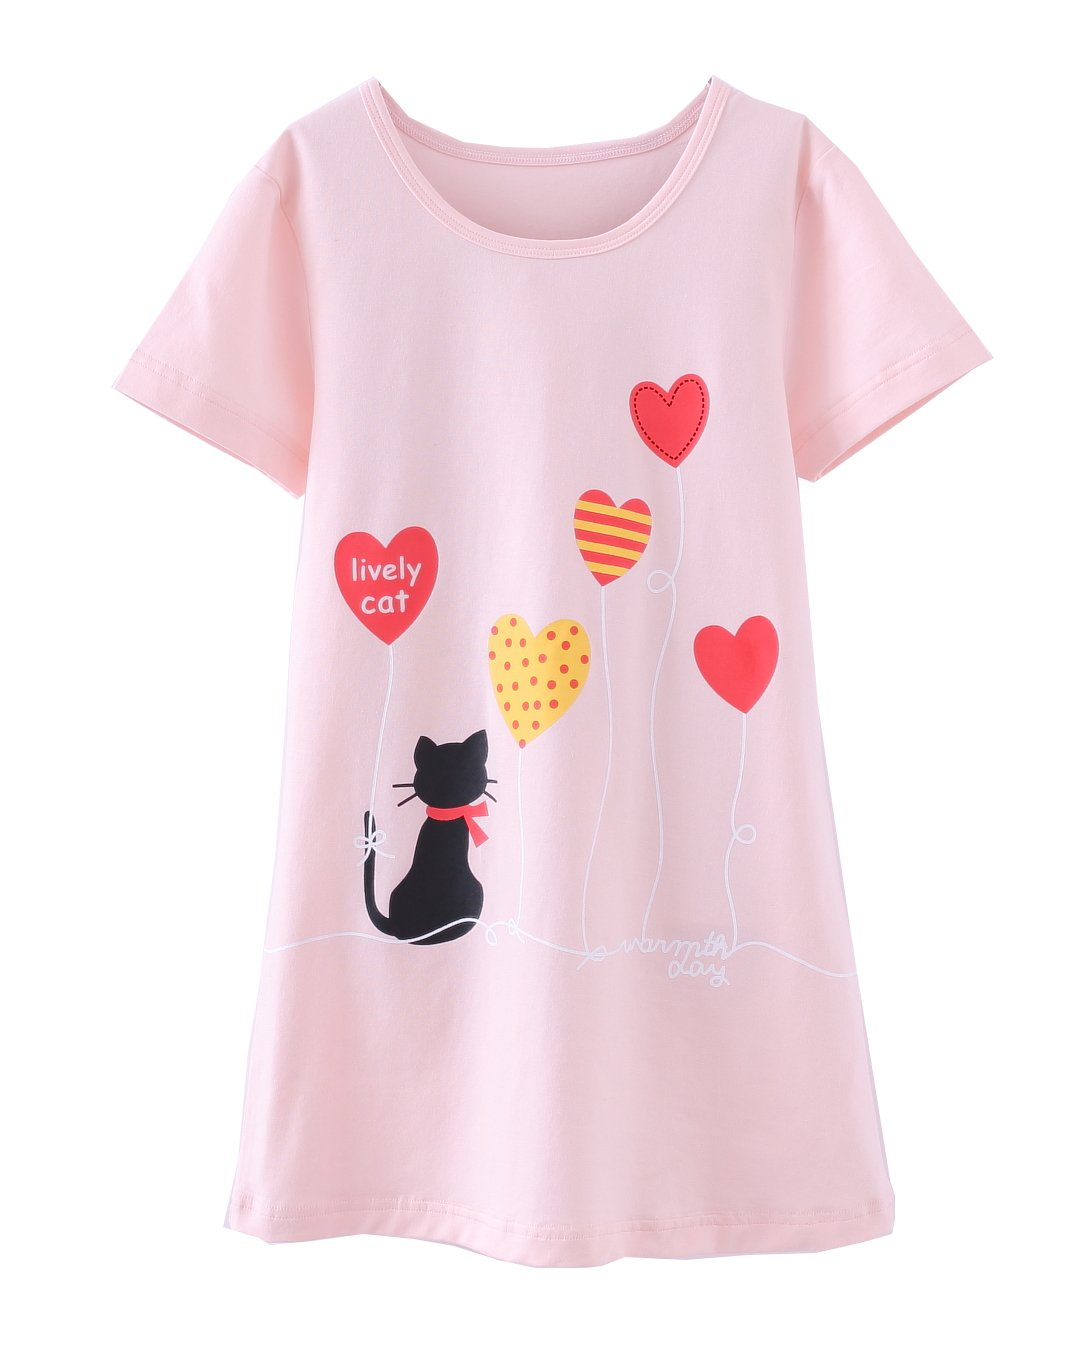 ABClothing Girls Cotton Cherry Nightgown Pink 2-12 Years Old